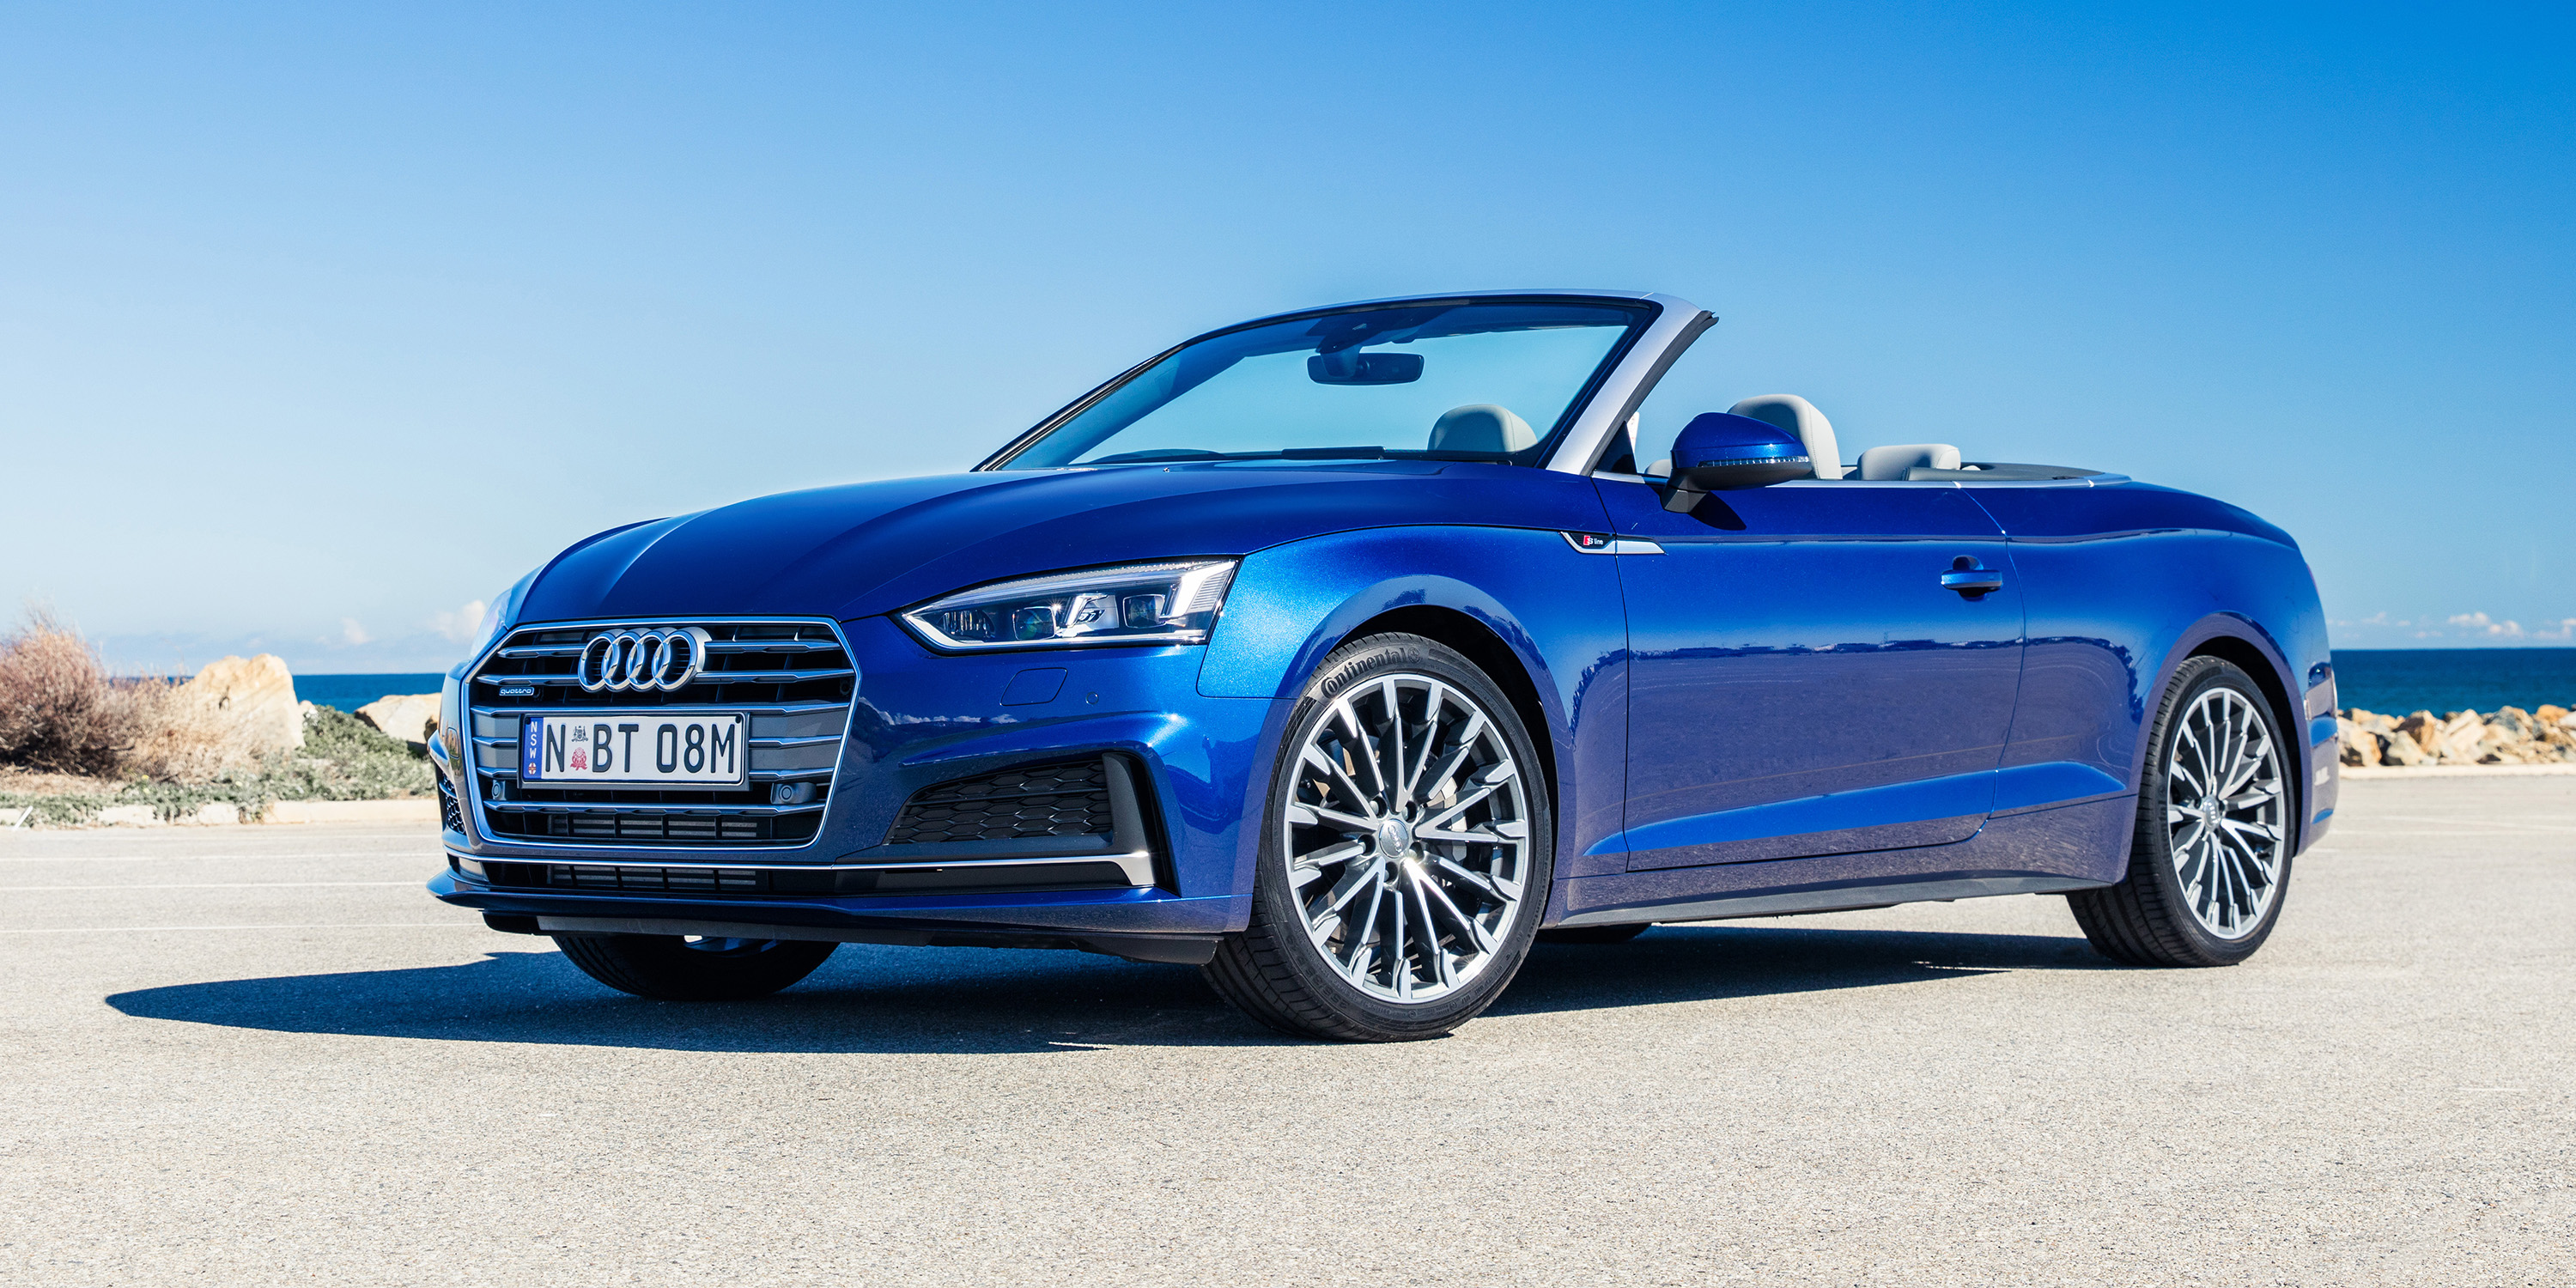 2018 Audi A5 S5 Cabriolet Review Caradvice